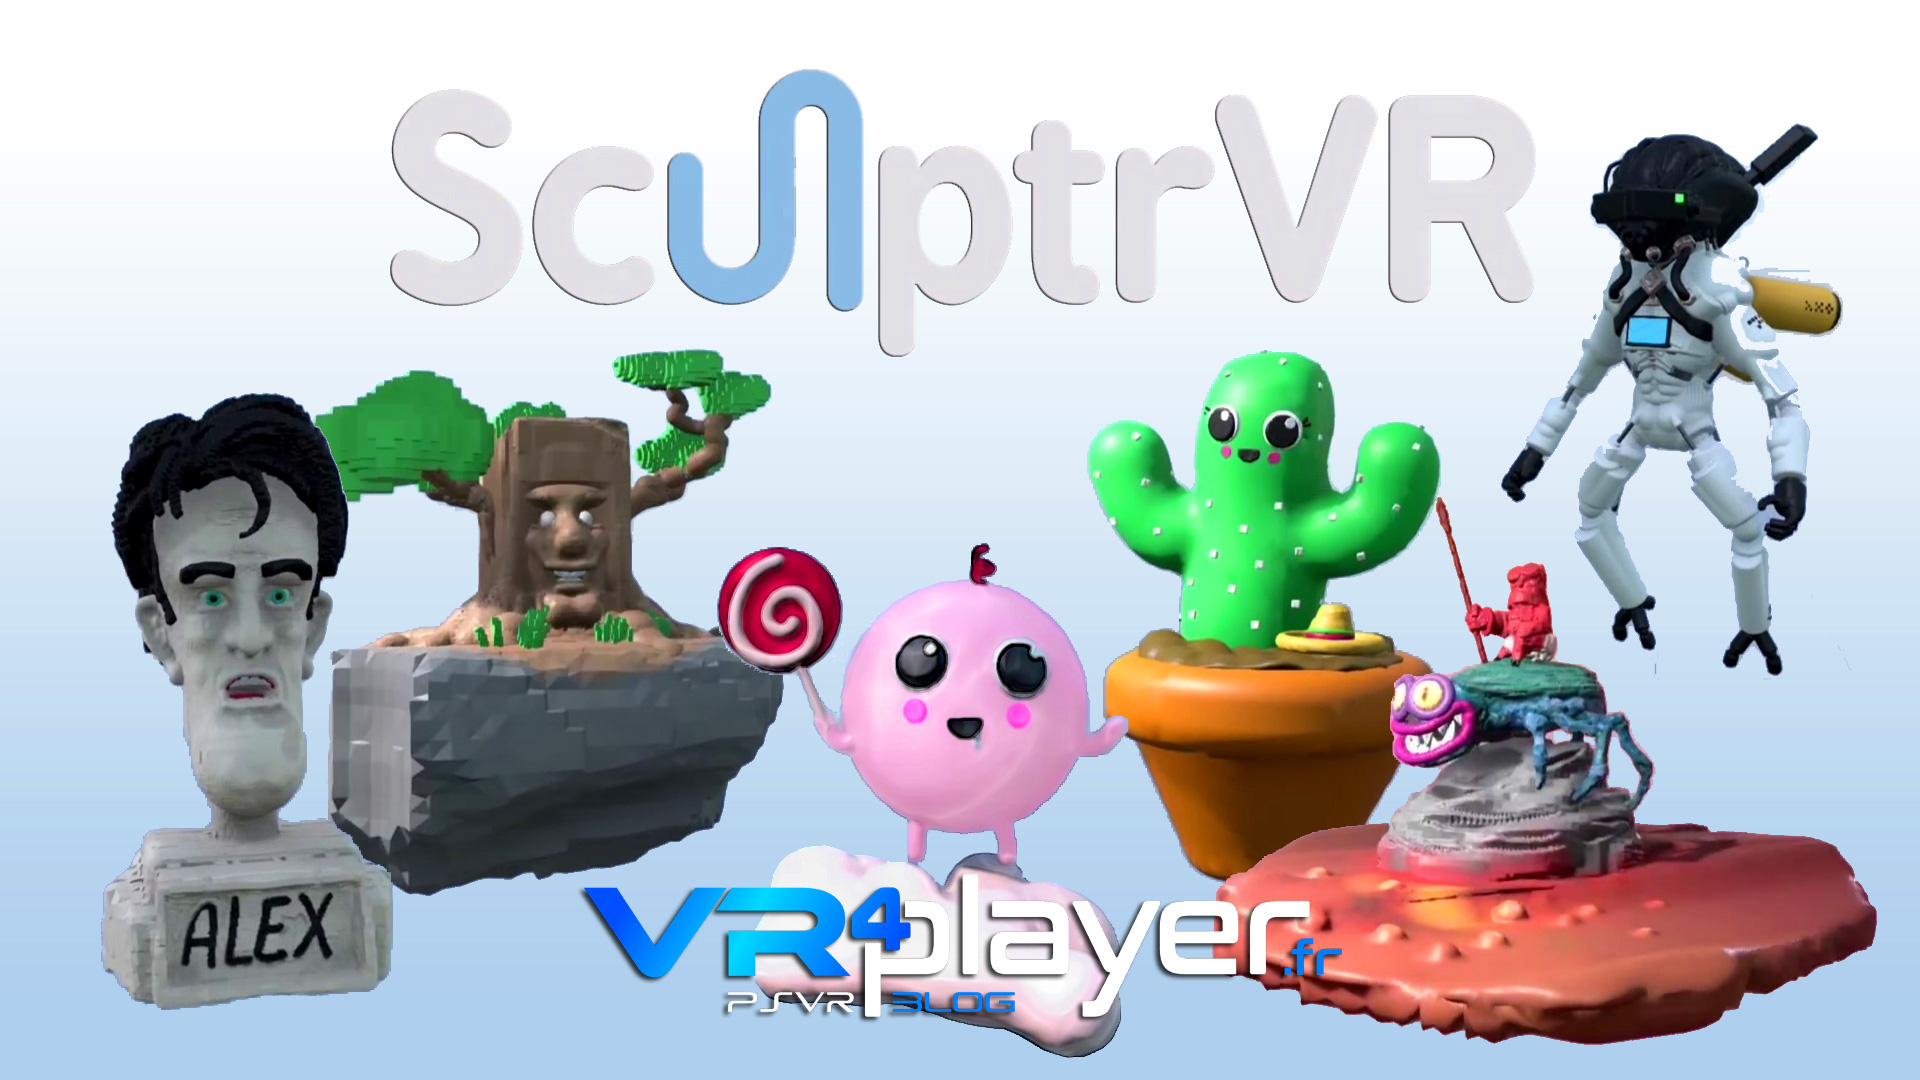 SculptrVR PlayStation VR vr4player.fr